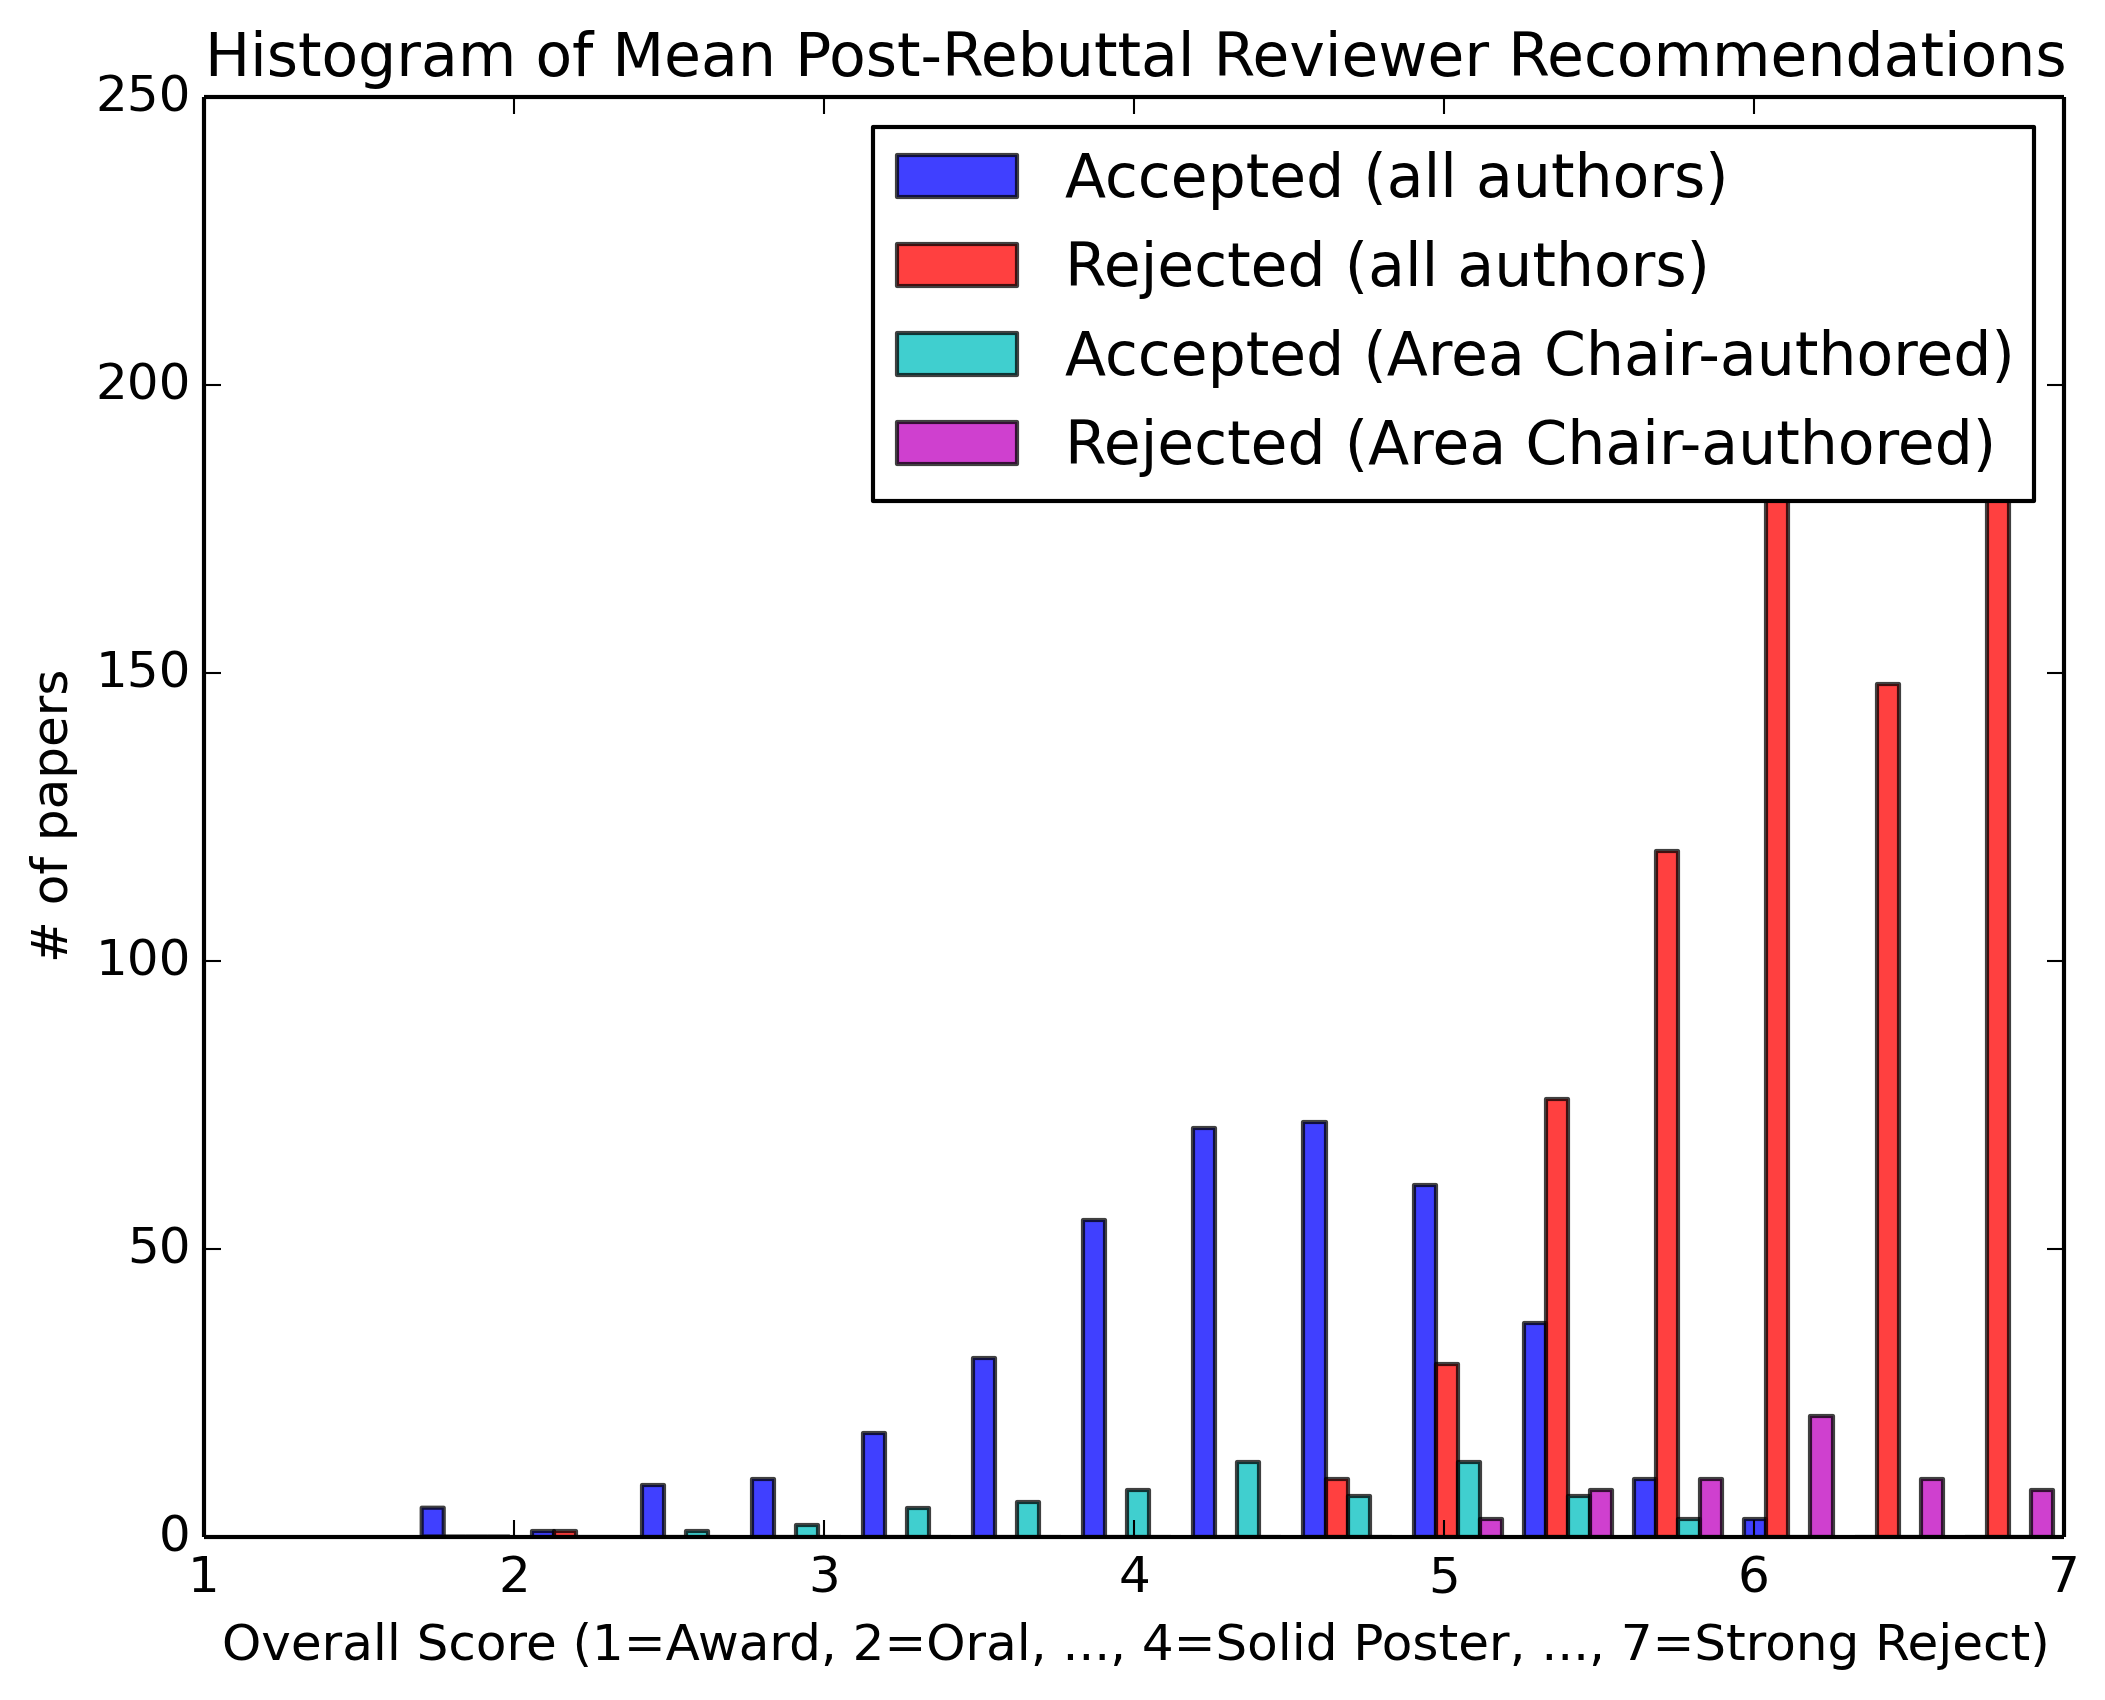 Mean Post-Rebuttal Reviewer Recommendations (Orals)